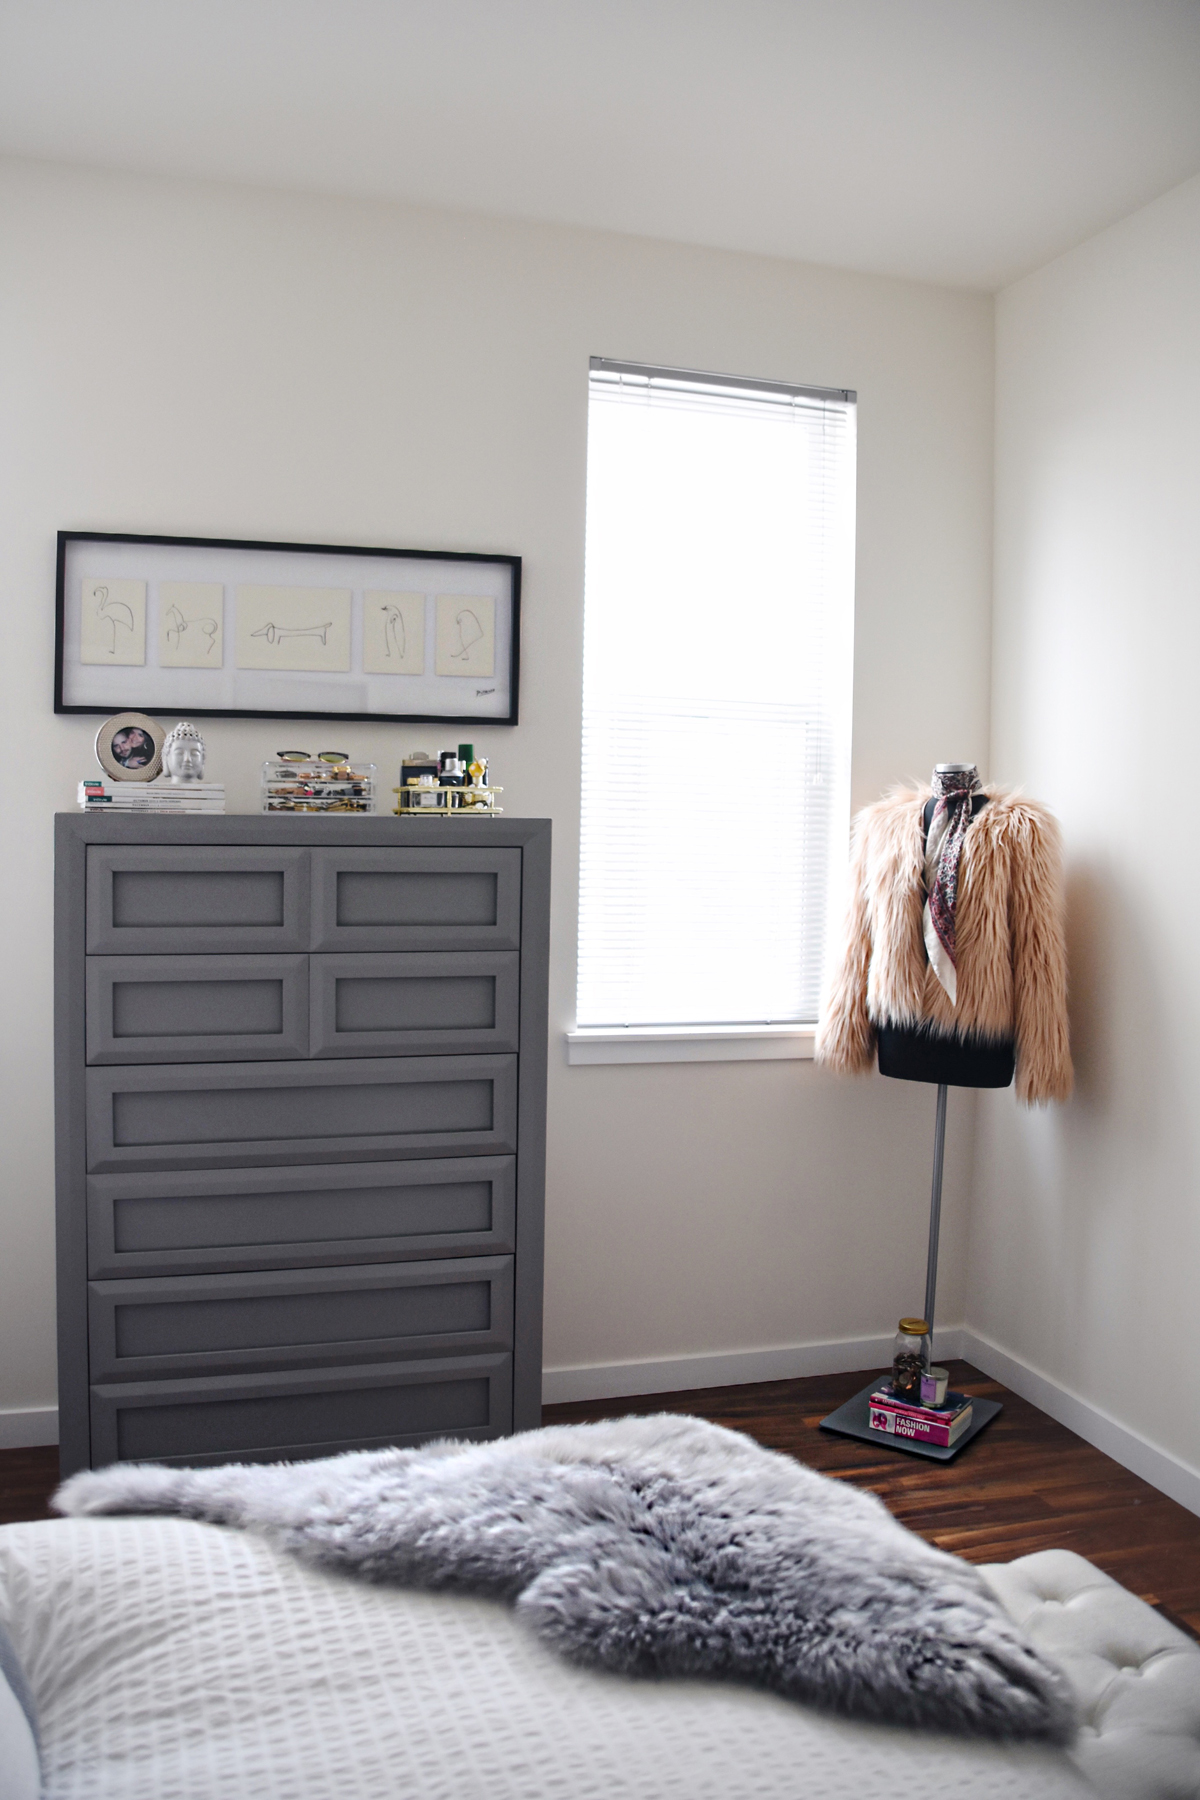 Bedroom decor inspiration with Article Velu pillow collection, and the Lanna Throw